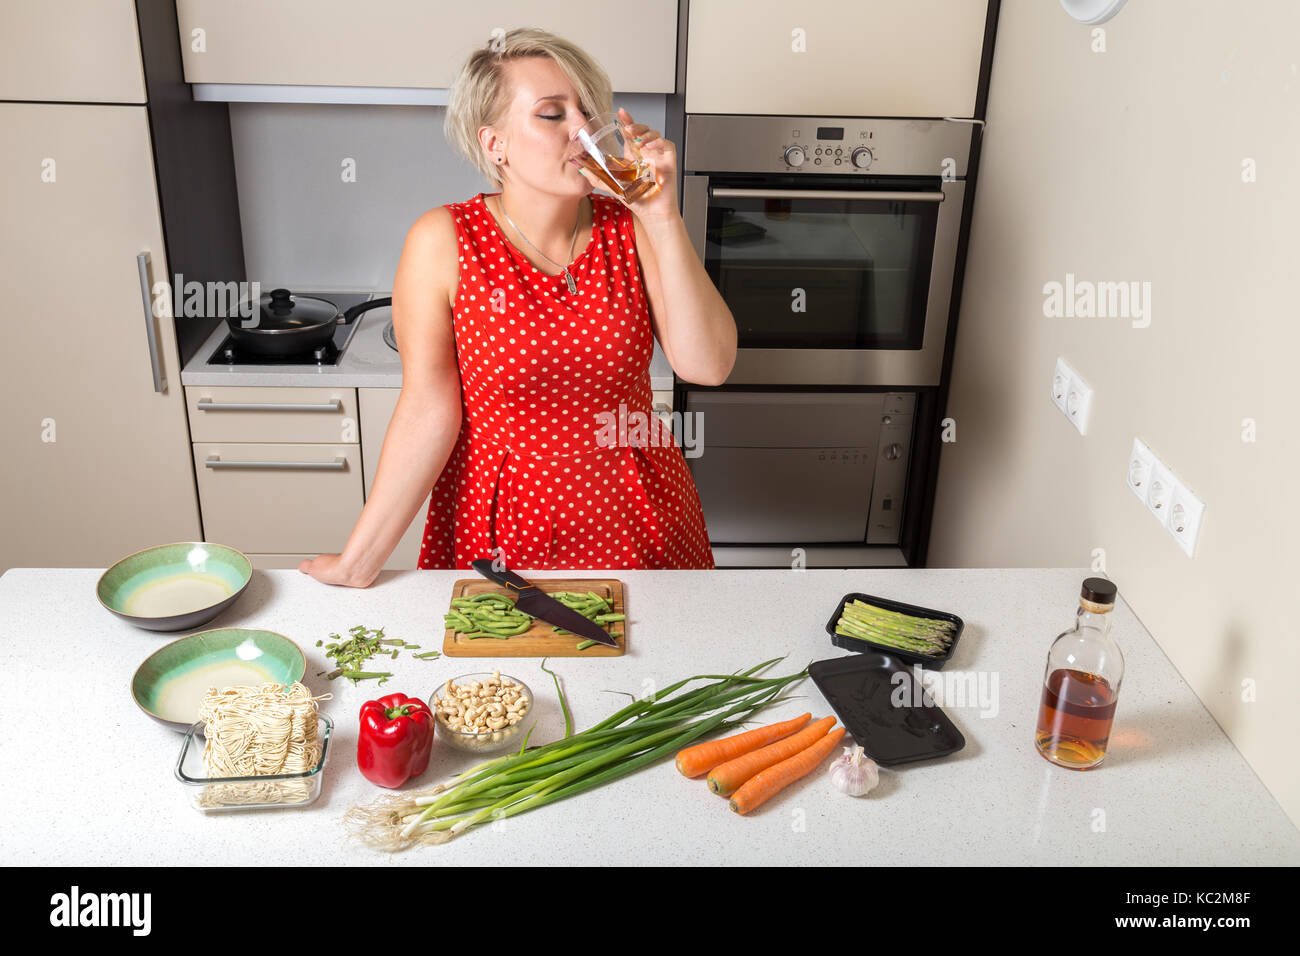 Cooking can wait if you need to drink some whiskey - Stock Image